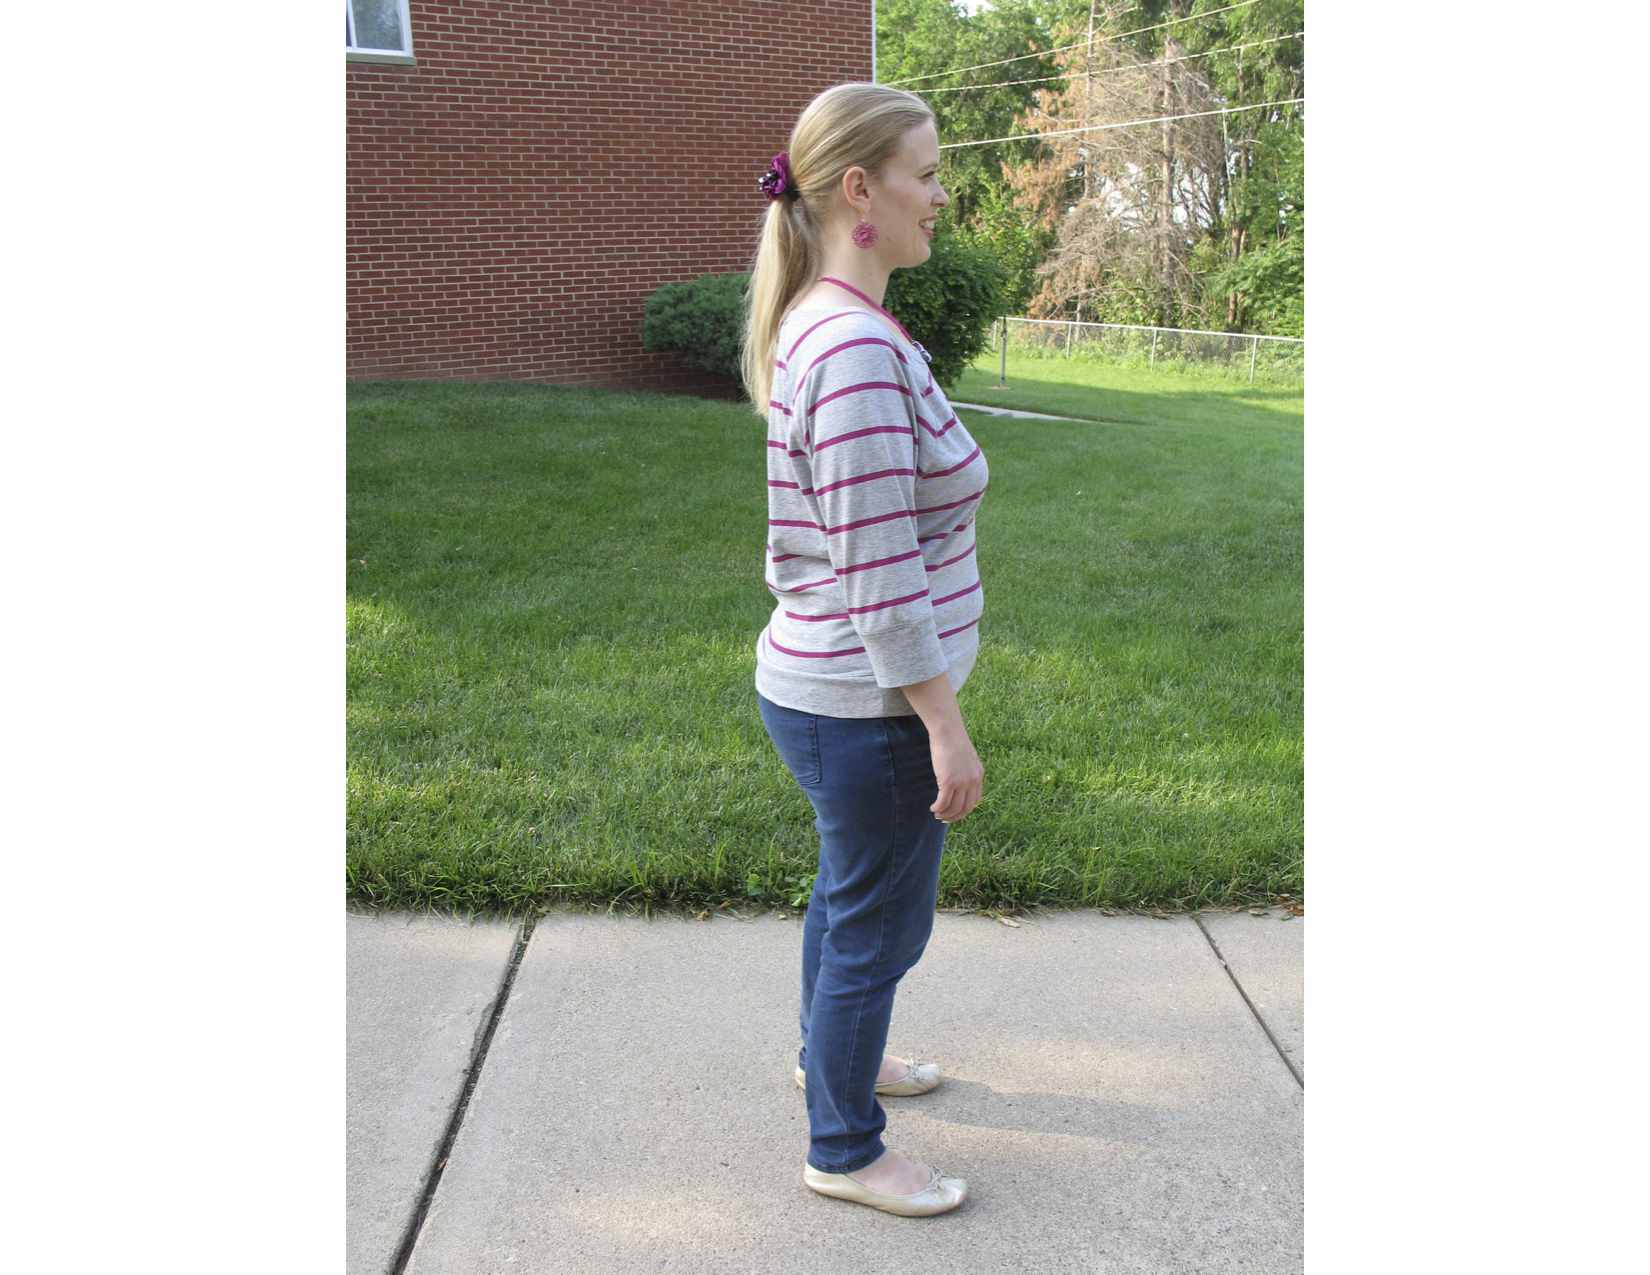 Woman standing on sidewalk with proper posture